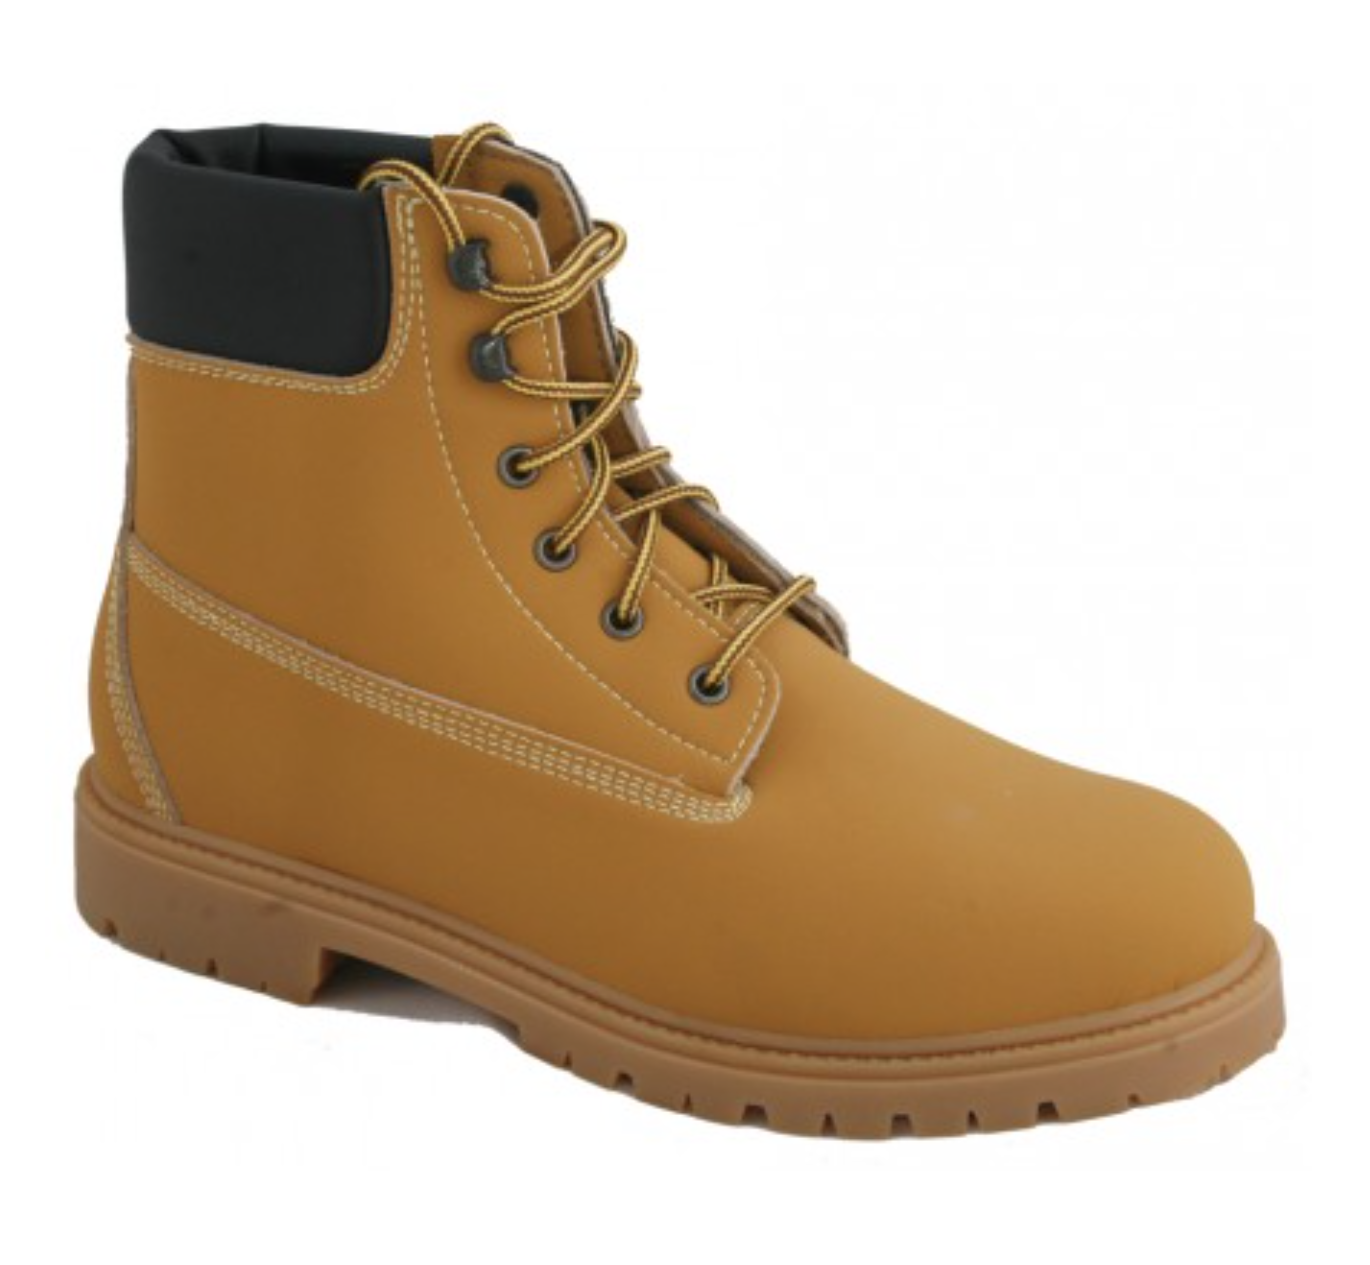 Timberland style vegan boot made for